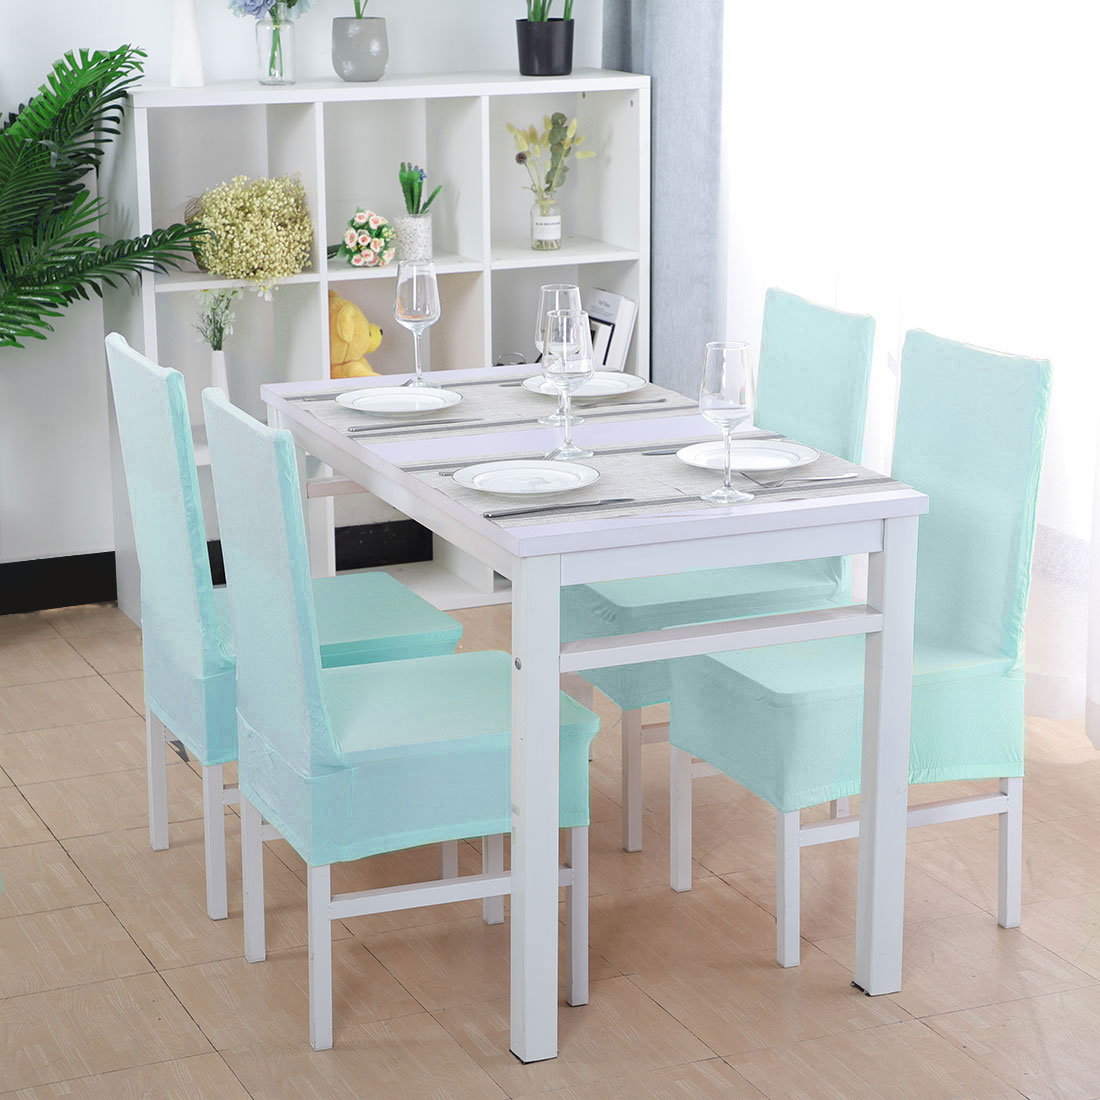 Kitchen Dining Chair Cover Restaurant Wedding Part Decor Sky Blue Set of 4